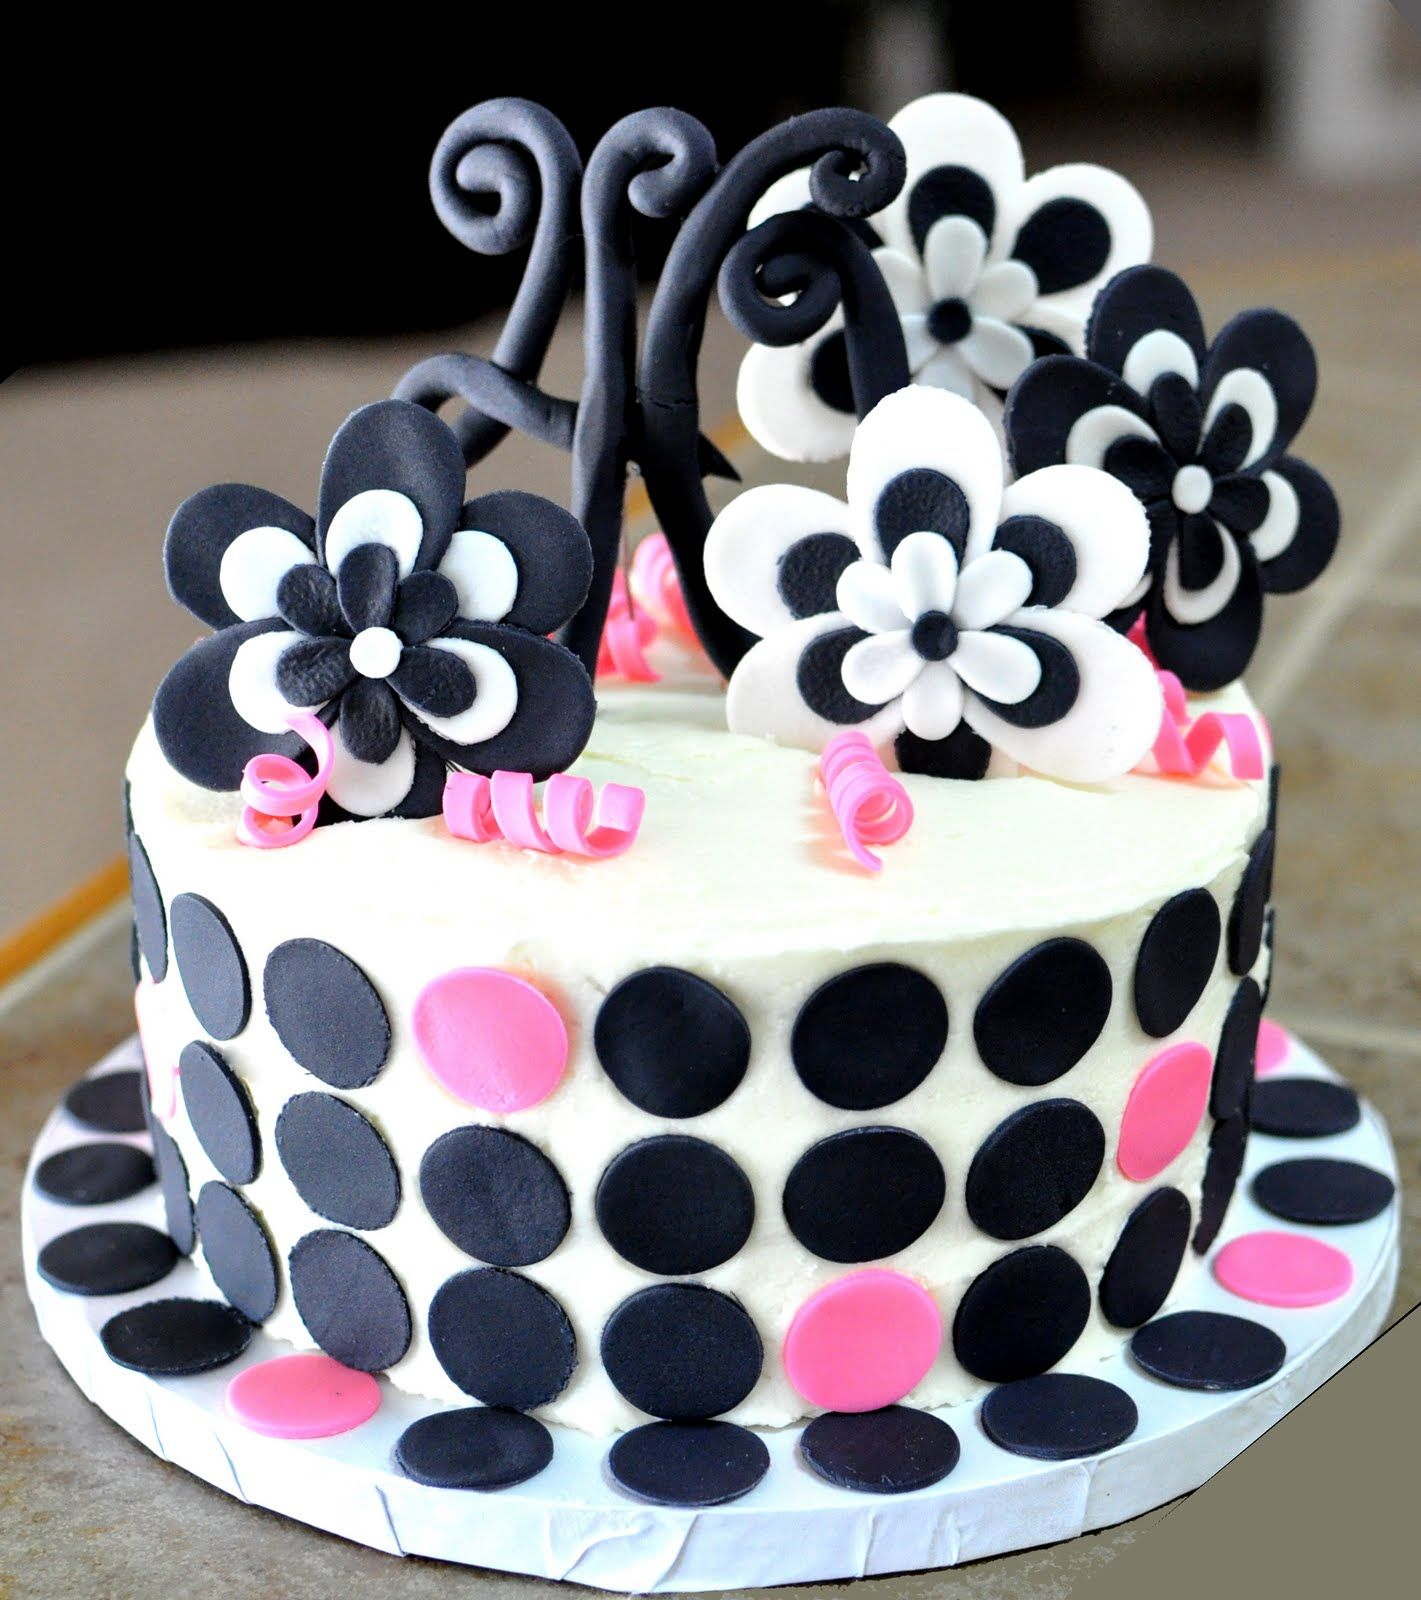 Pin by Jeneane Cosby on cakes | 40th birthday cakes, Cake ...